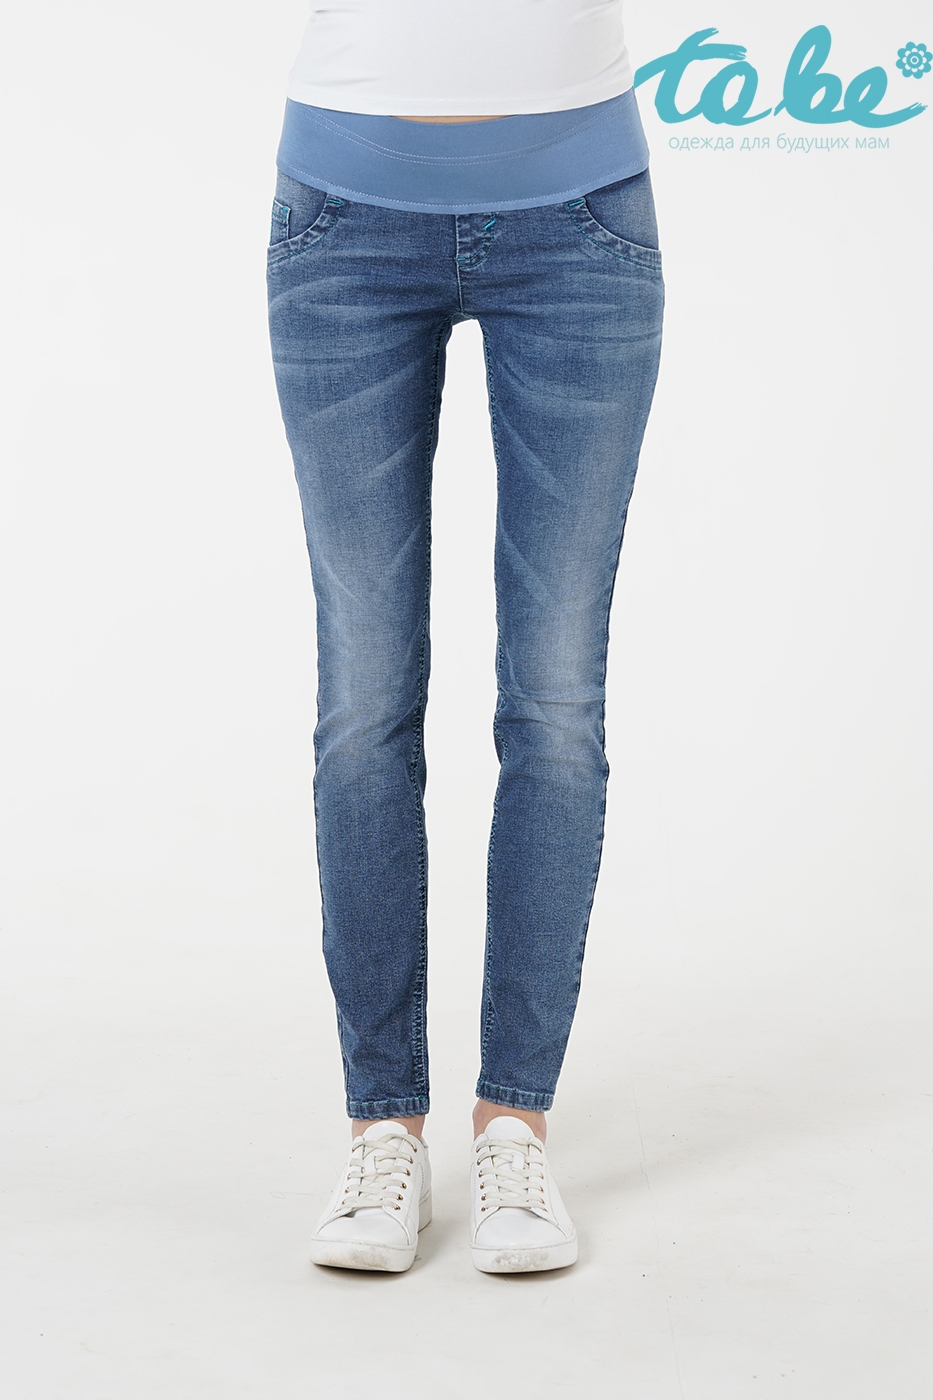 To Be/scoro/tobe_jeans_4060723_5_sin15.jpg